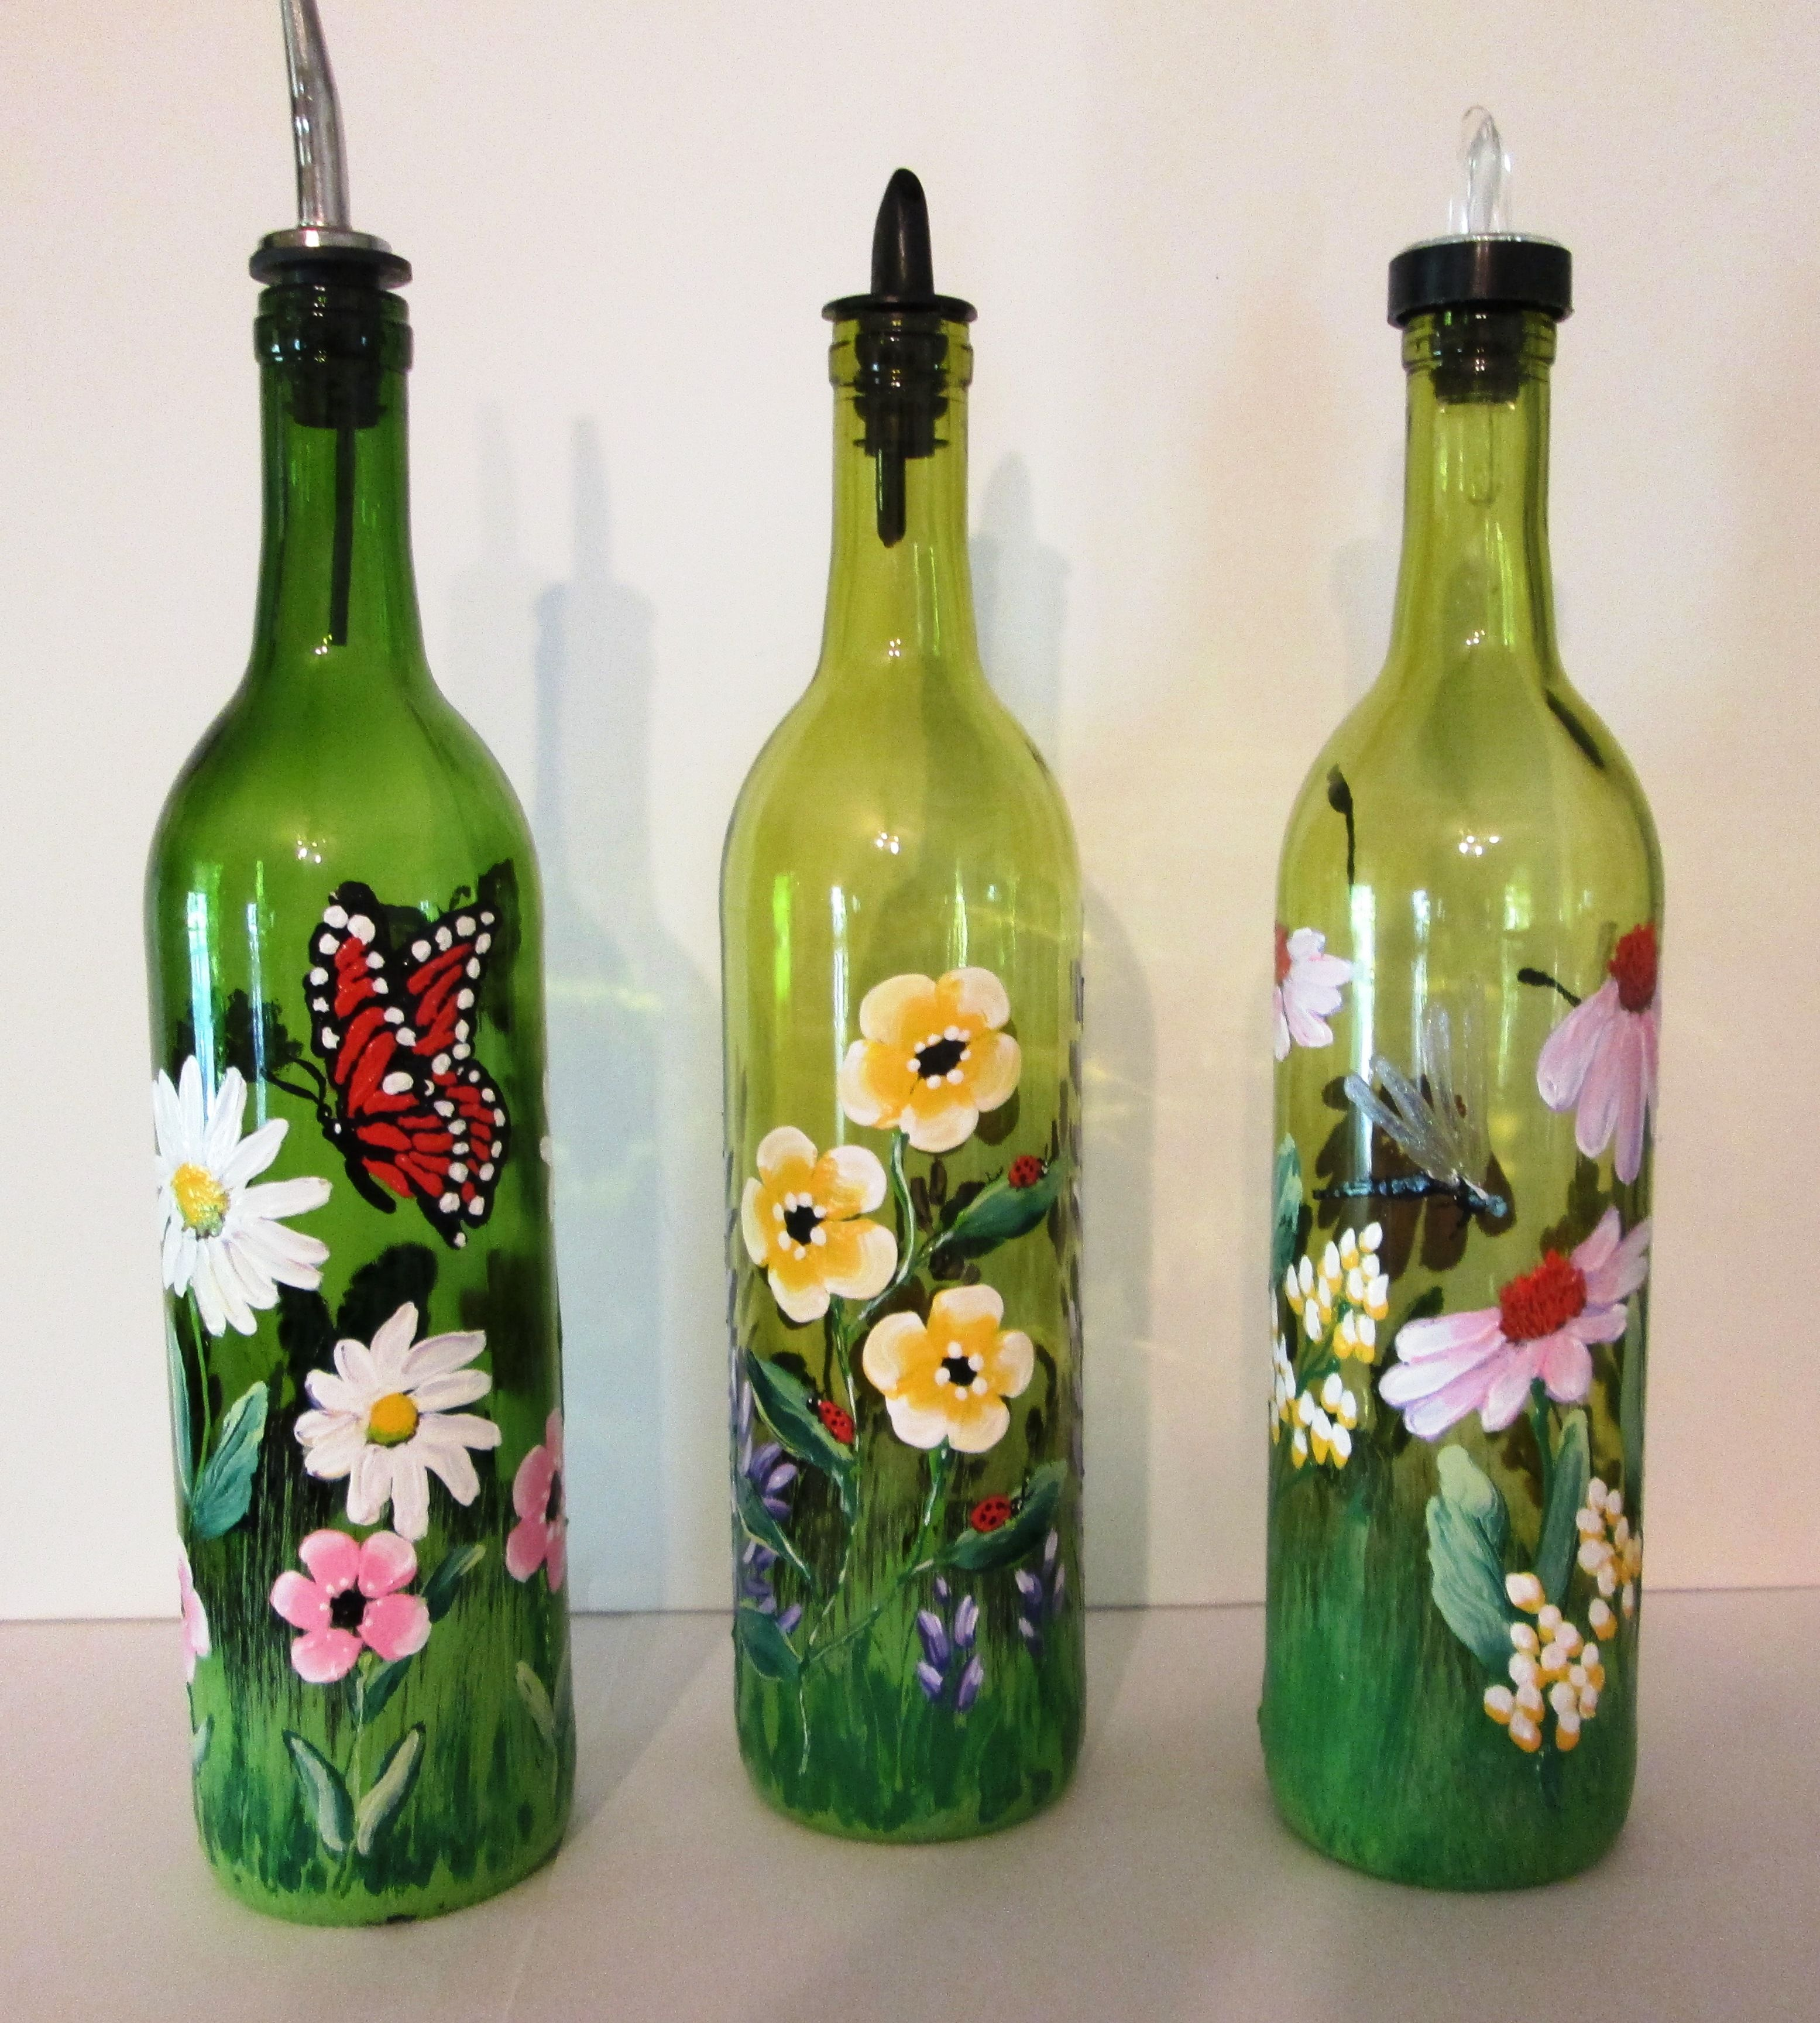 vibrant painted wine bottles with butterflies lady bugs